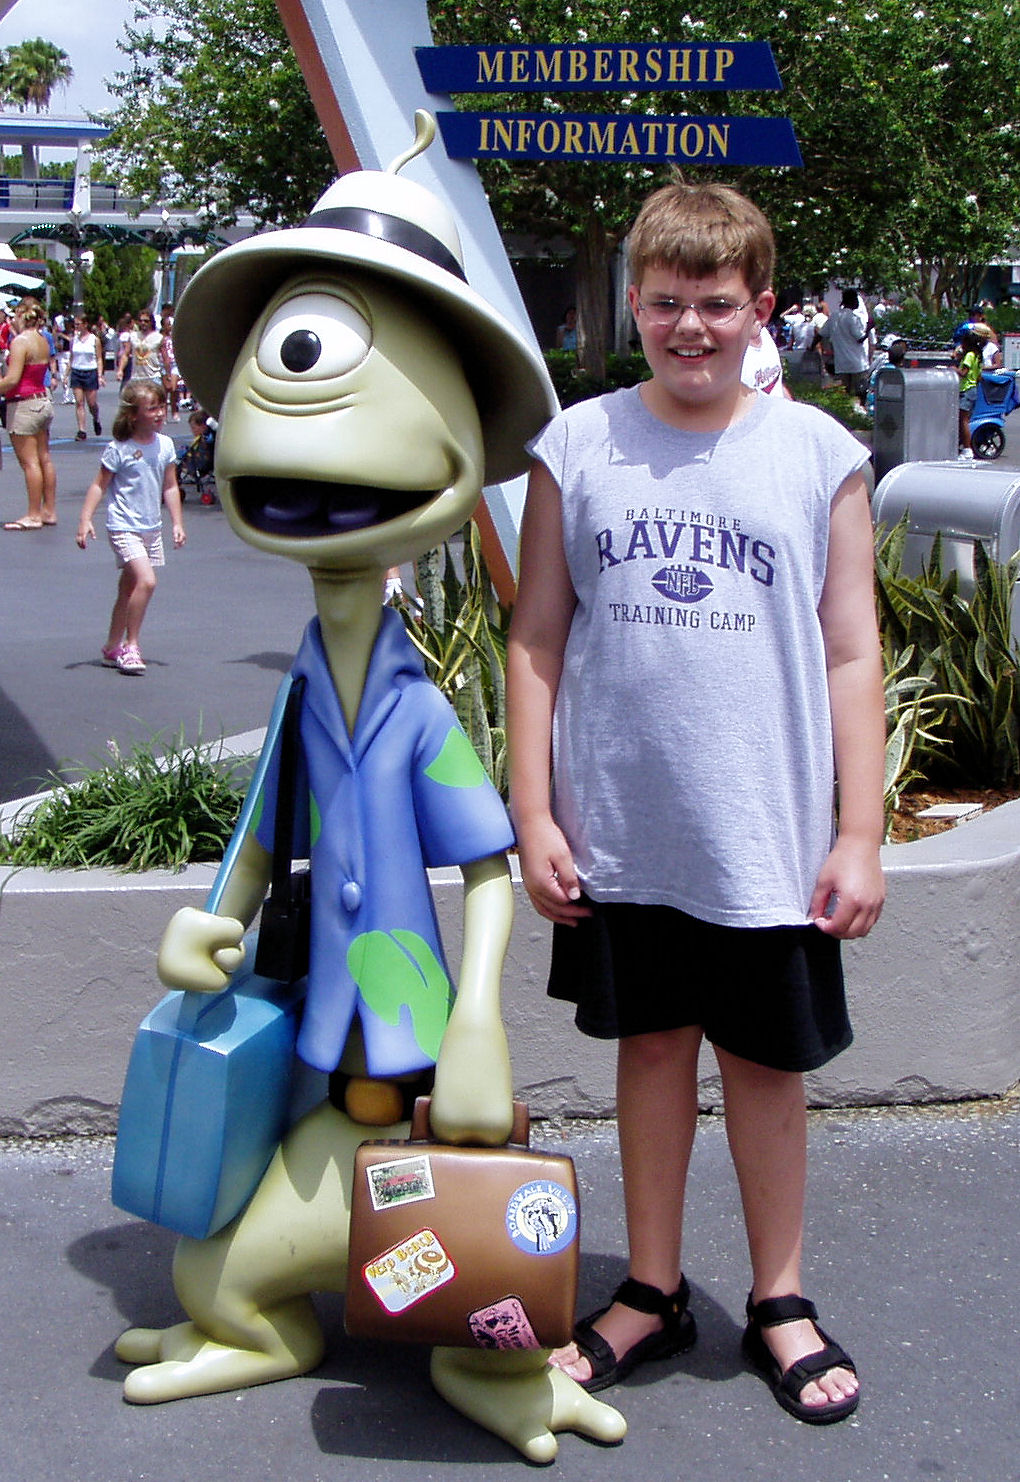 Me standing next to Pleakley by a kiosk for the Disney Vacation Club in The Magic Kingdom at Disney World.